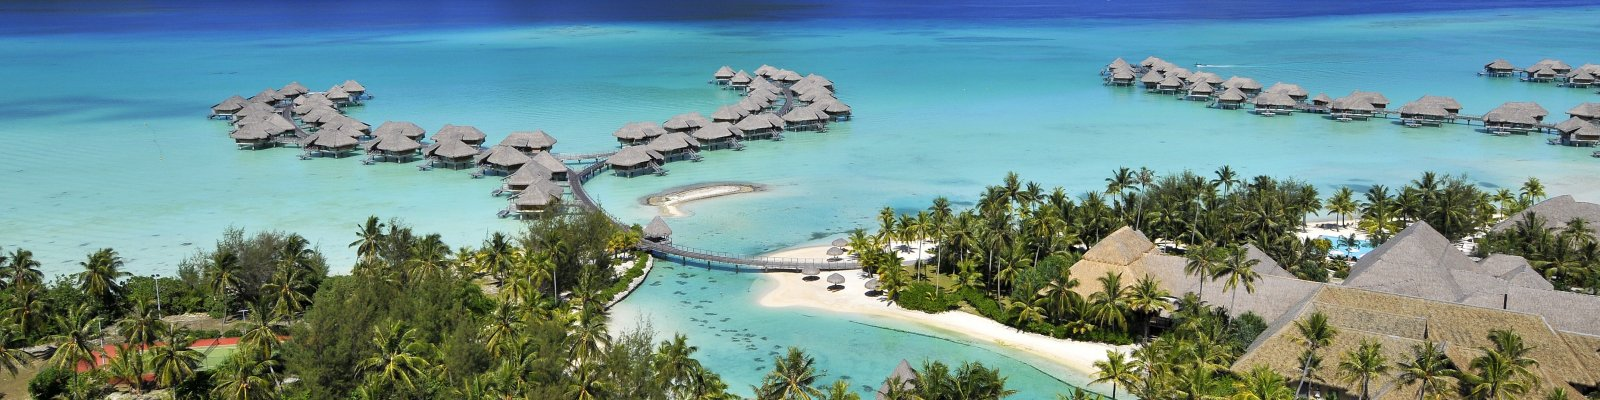 Bungalowy na wodzie w InterContinental Bora Bora Resort & Thalasso Spa